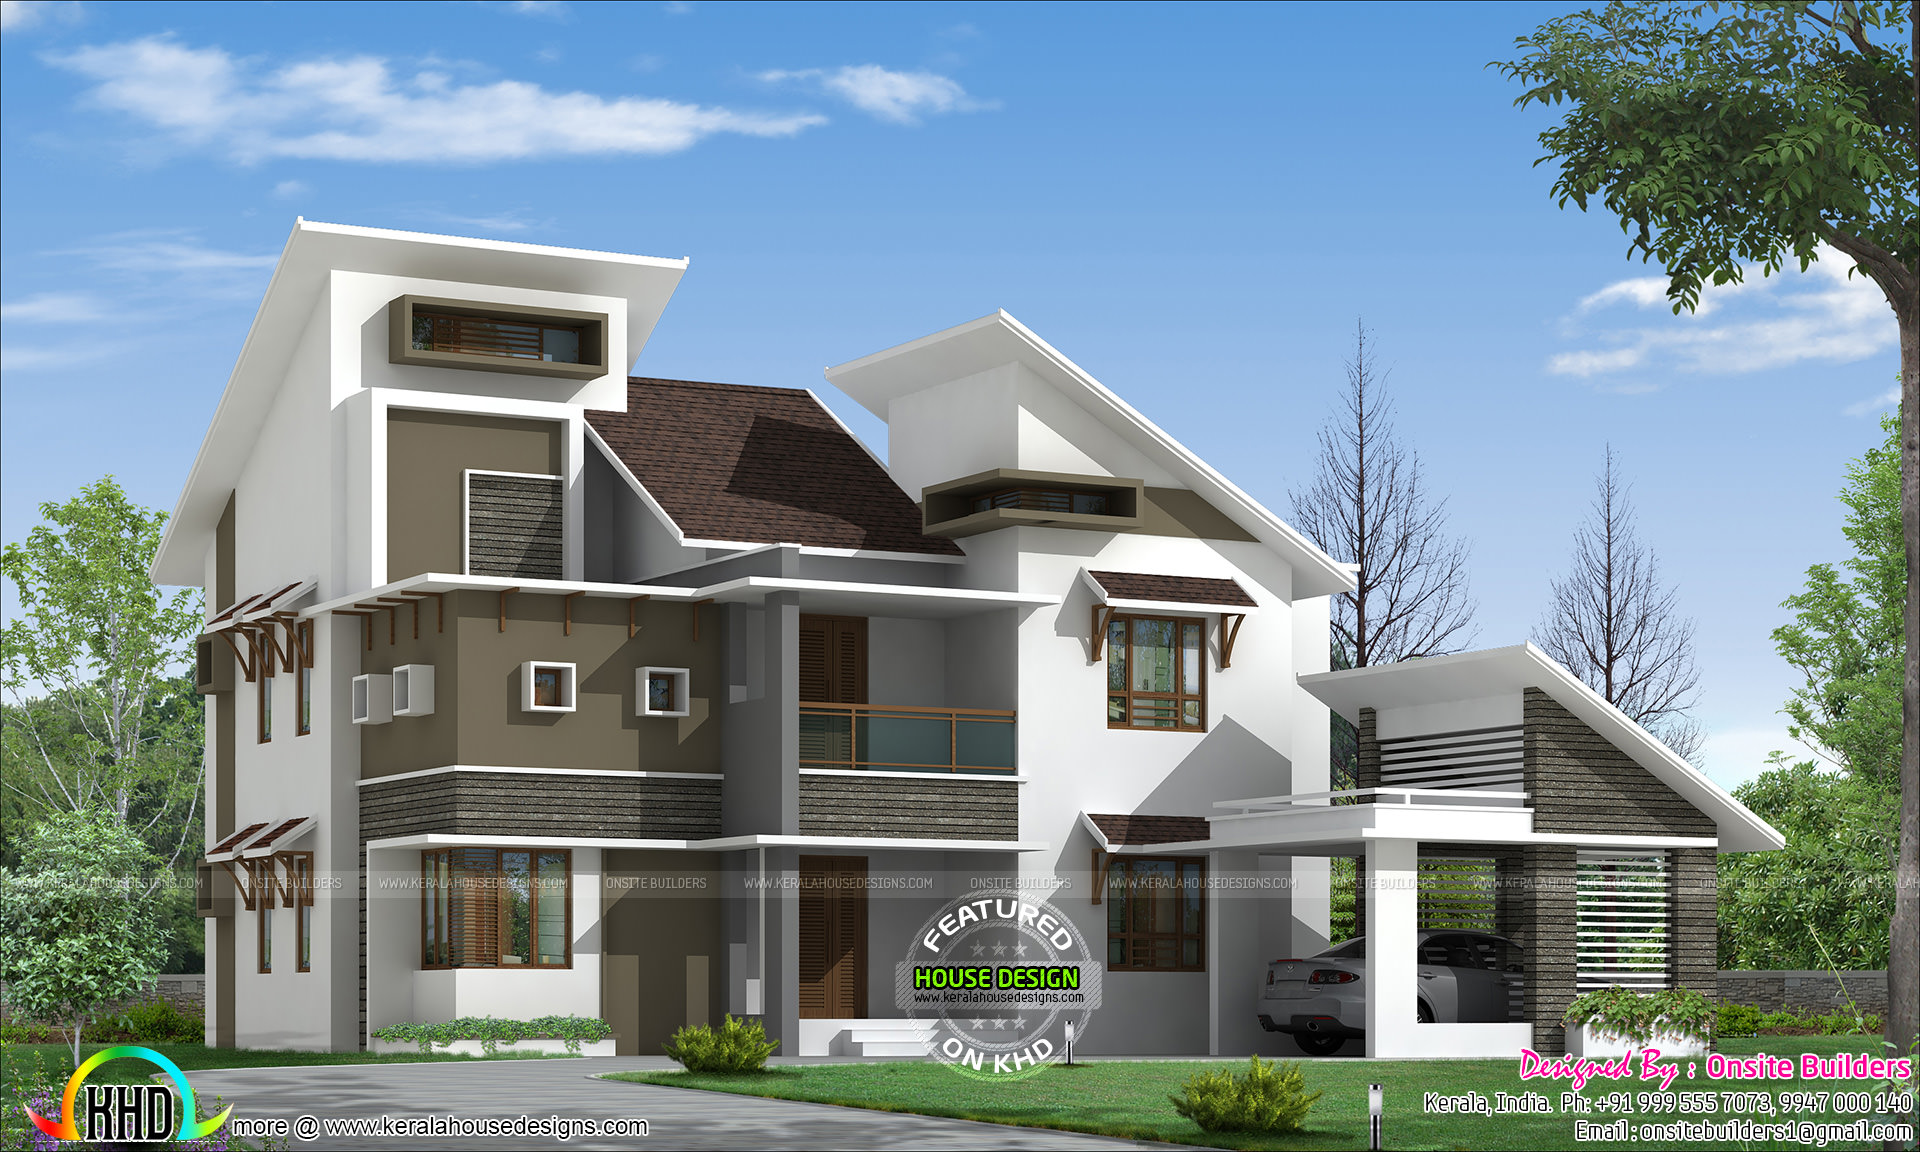 Slanting roof style modern home kerala home design and for Contemporary roof